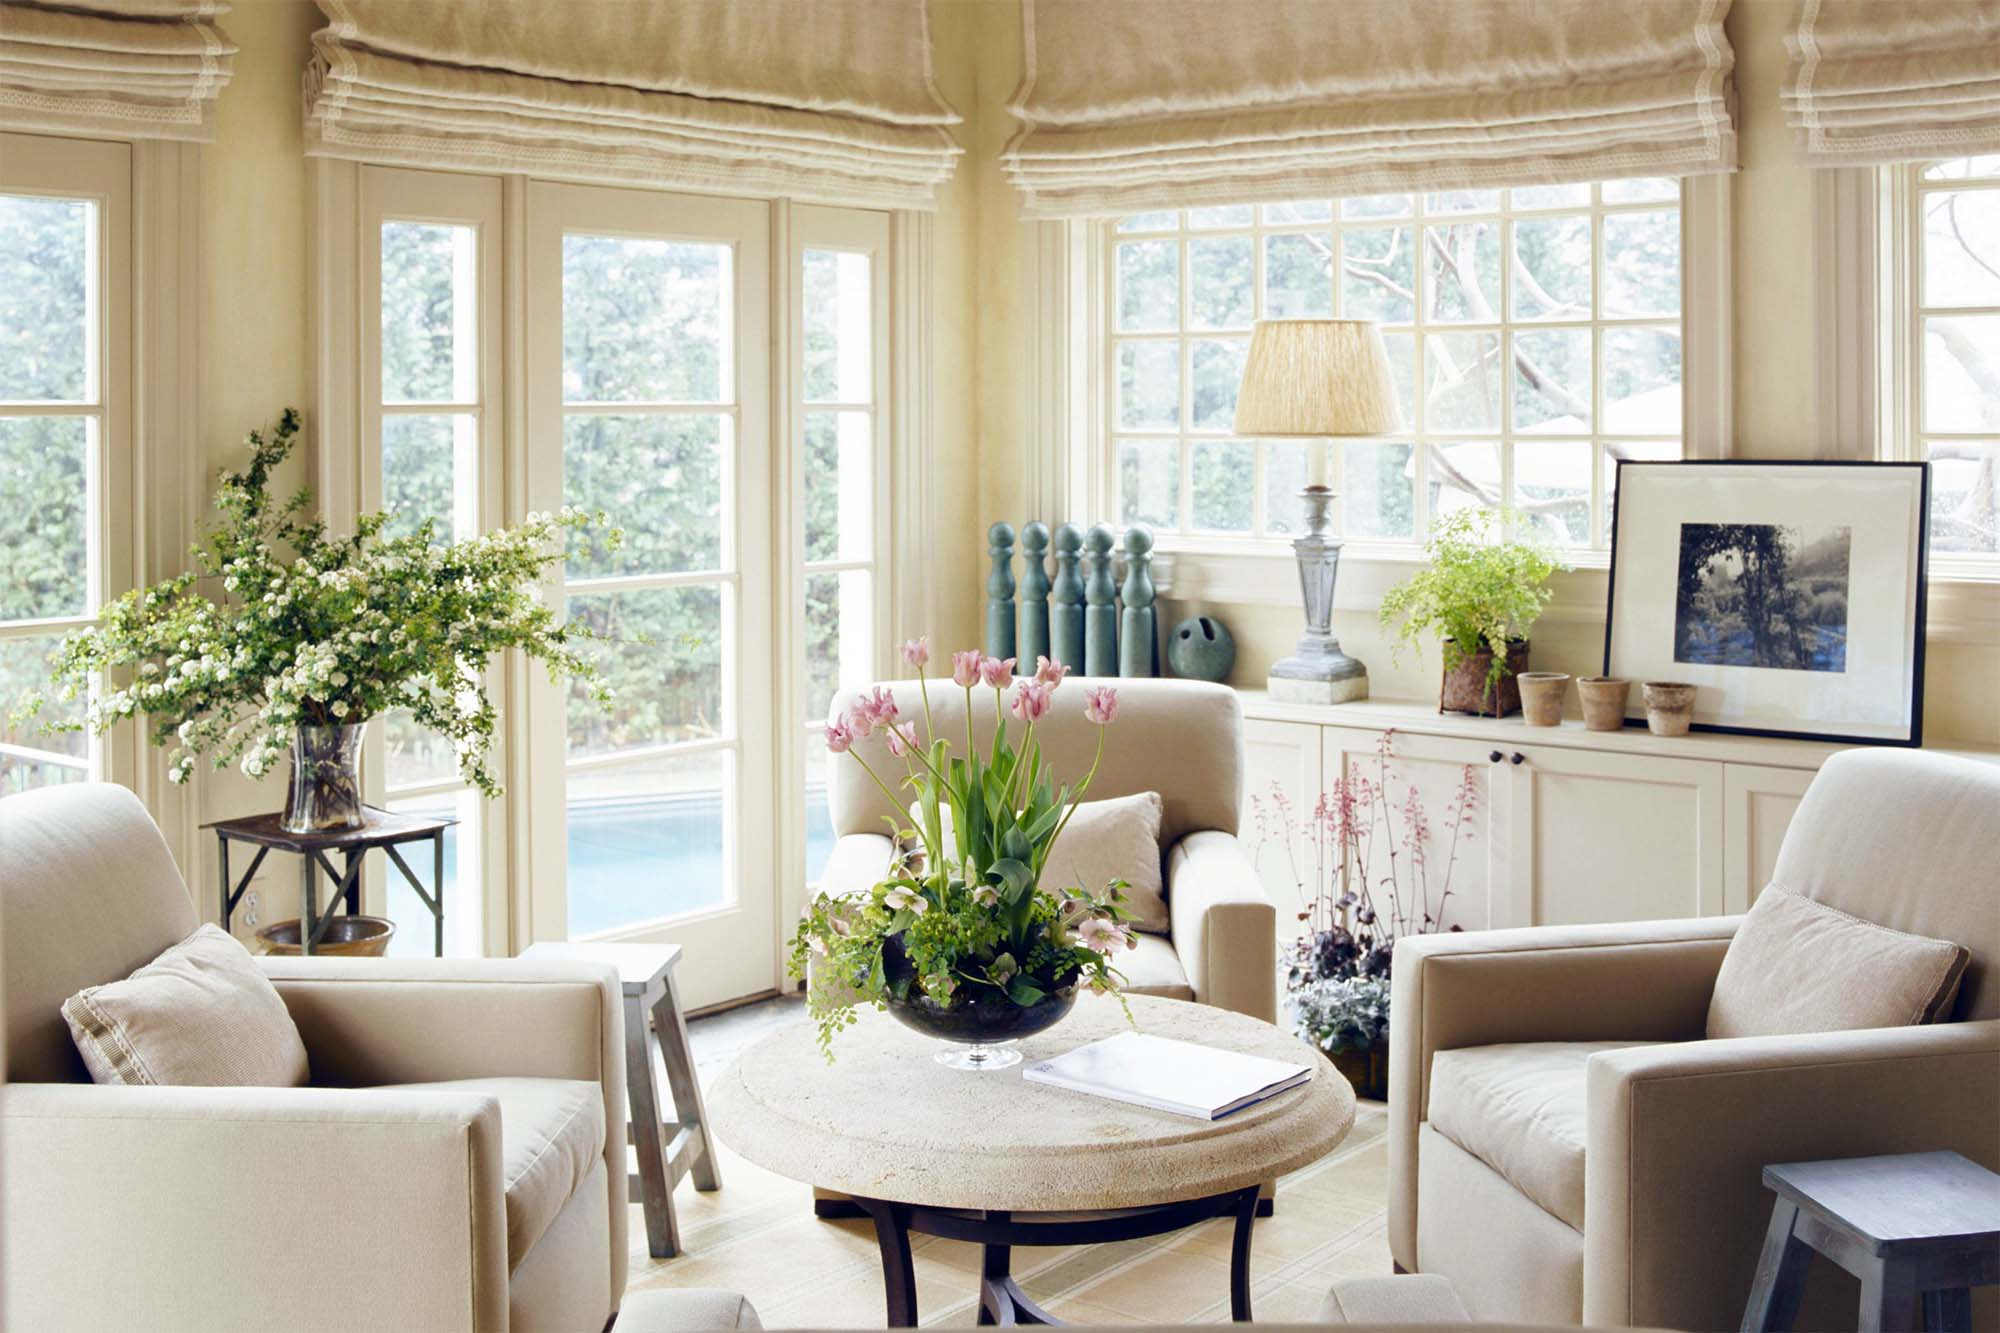 cream theme custom sunroom cream plush chairs and rug nj custom sunroom builder Gambrick